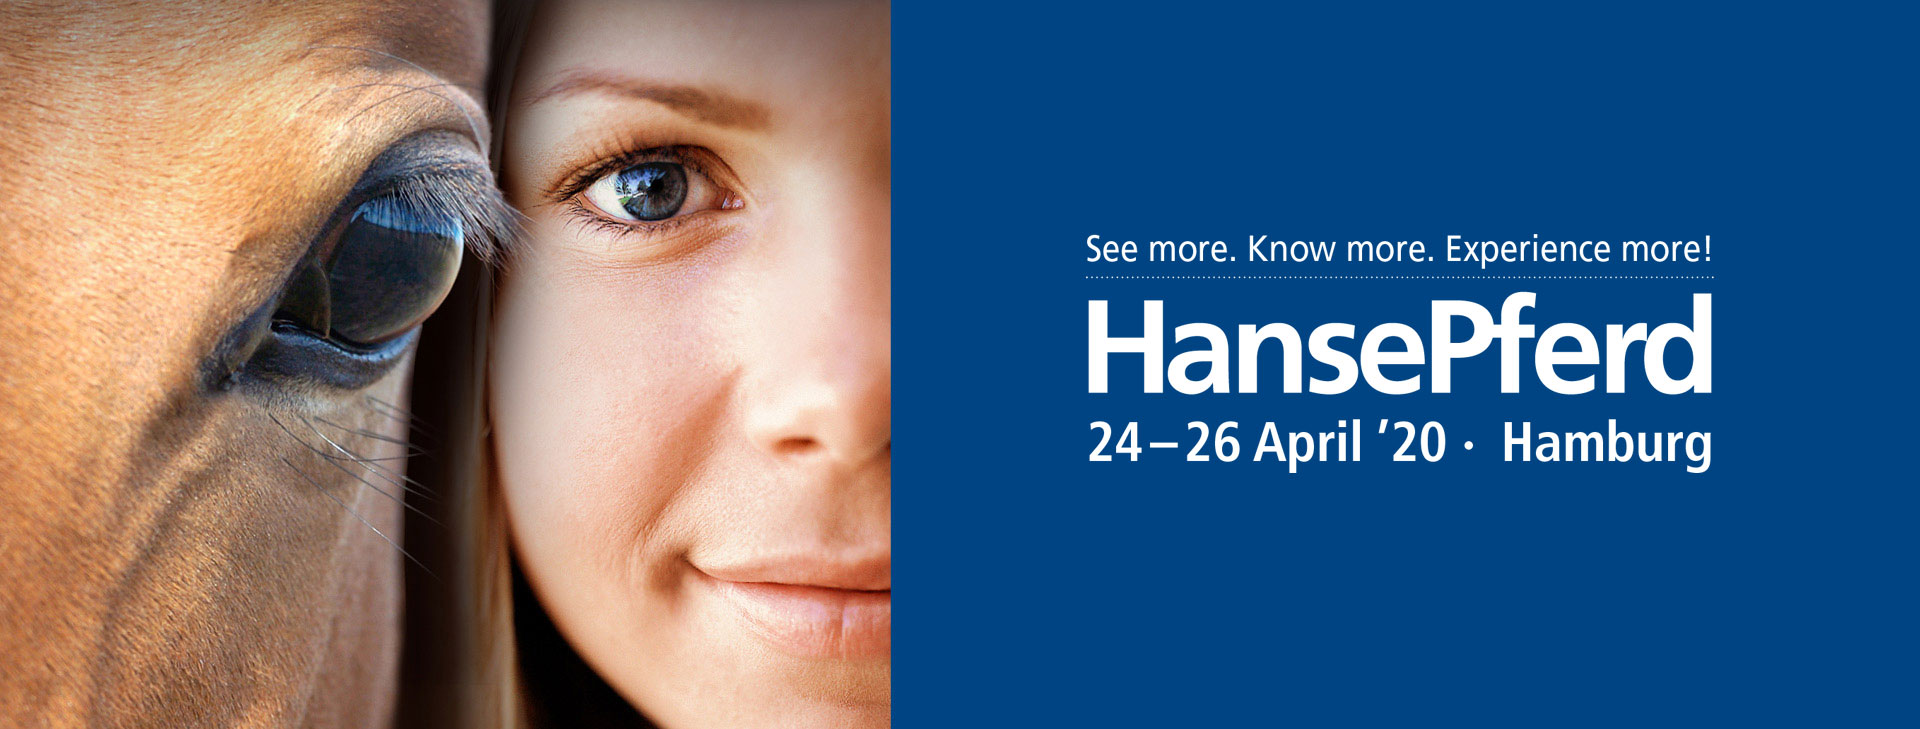 HansePferd Hamburg - The equestrian trade fair experience